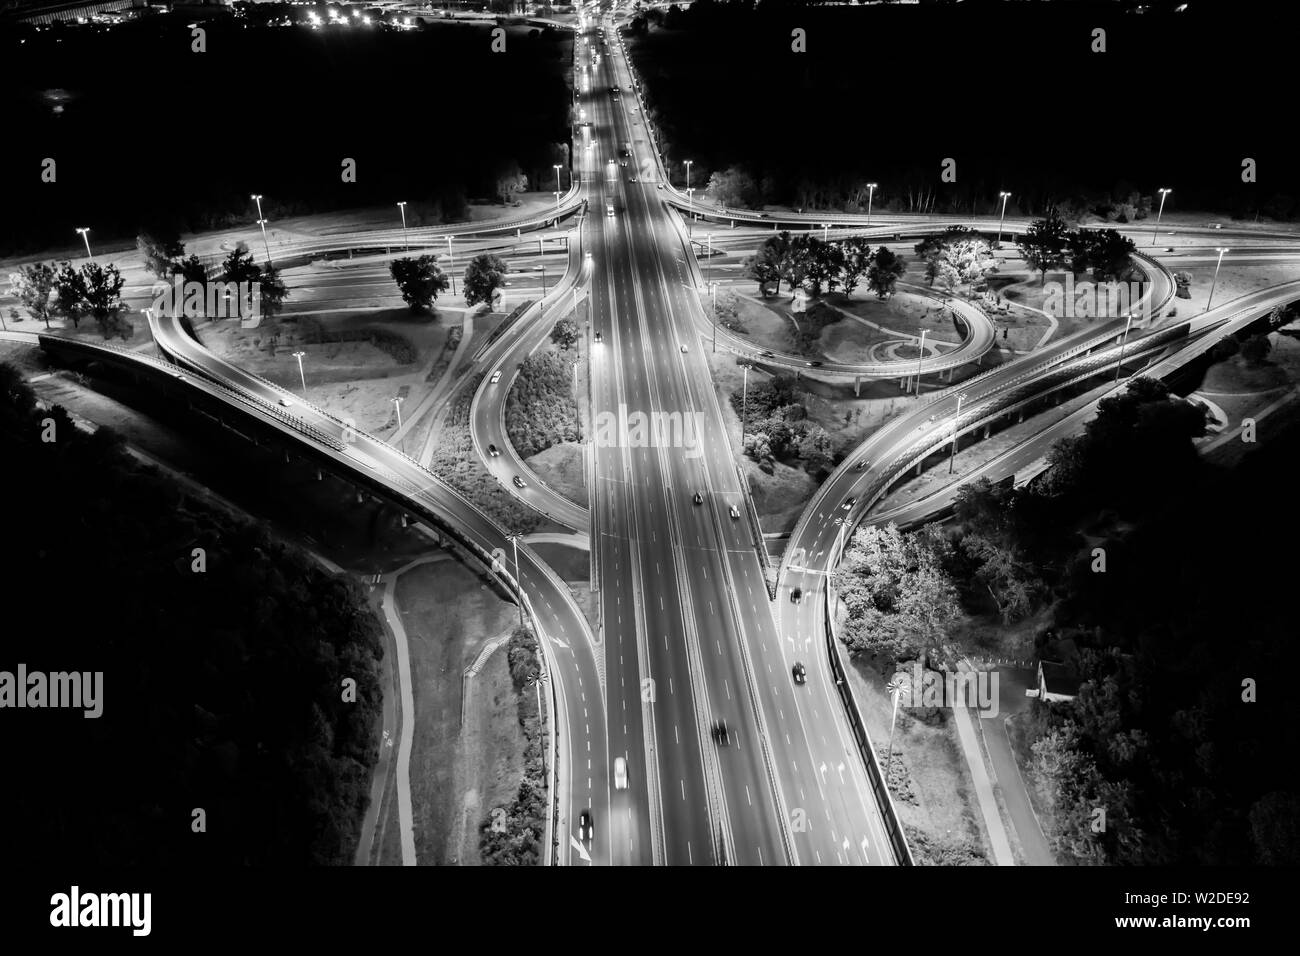 Aerial top view interchange of a city at night, Expressway is an important infrastructure in city, Road interchange in the city at night with vehicle - Stock Image